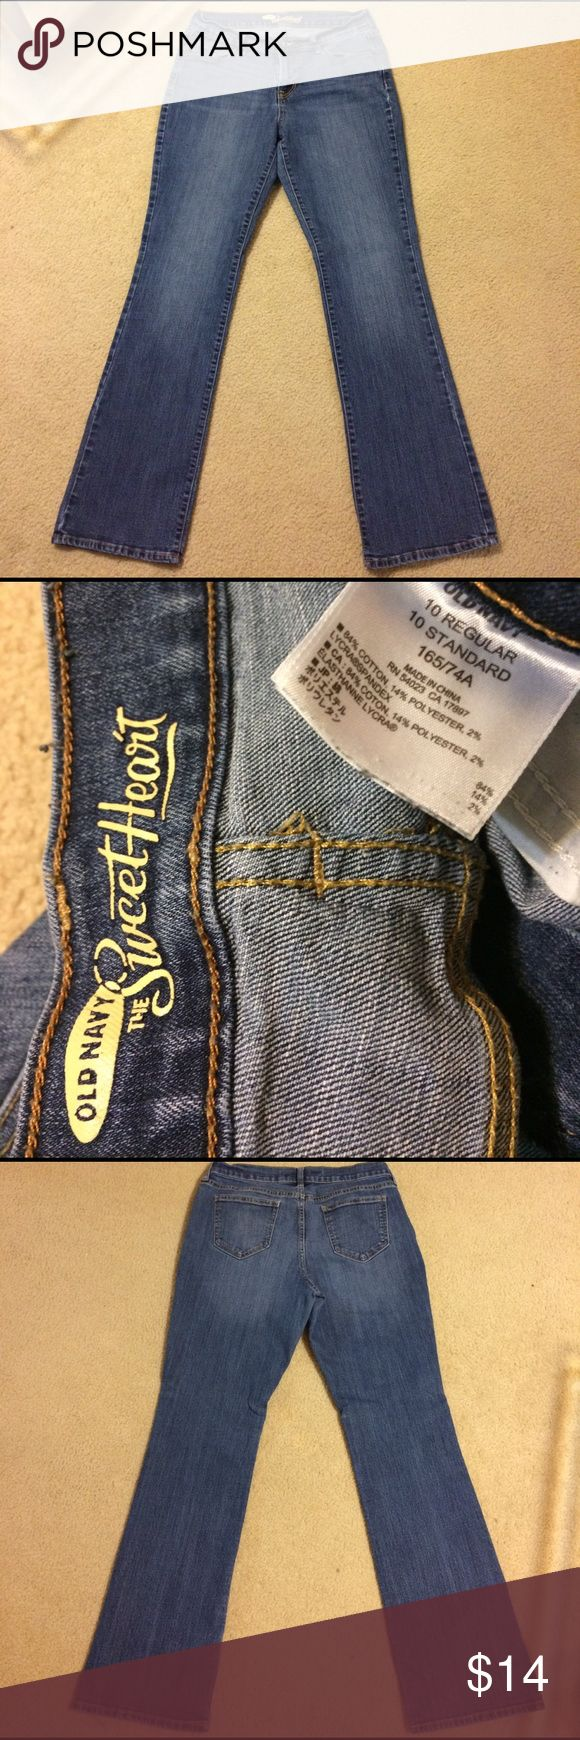 """Old Navy """"the Sweetheart"""" Cut Blue Jeans Gently worn. Old Navy """"the Sweetheart"""" Cut Blue Jeans women's Size 10 with 30 inch inseam. No rips, stains or tears. Non smoking home. Old Navy Jeans Boot Cut"""